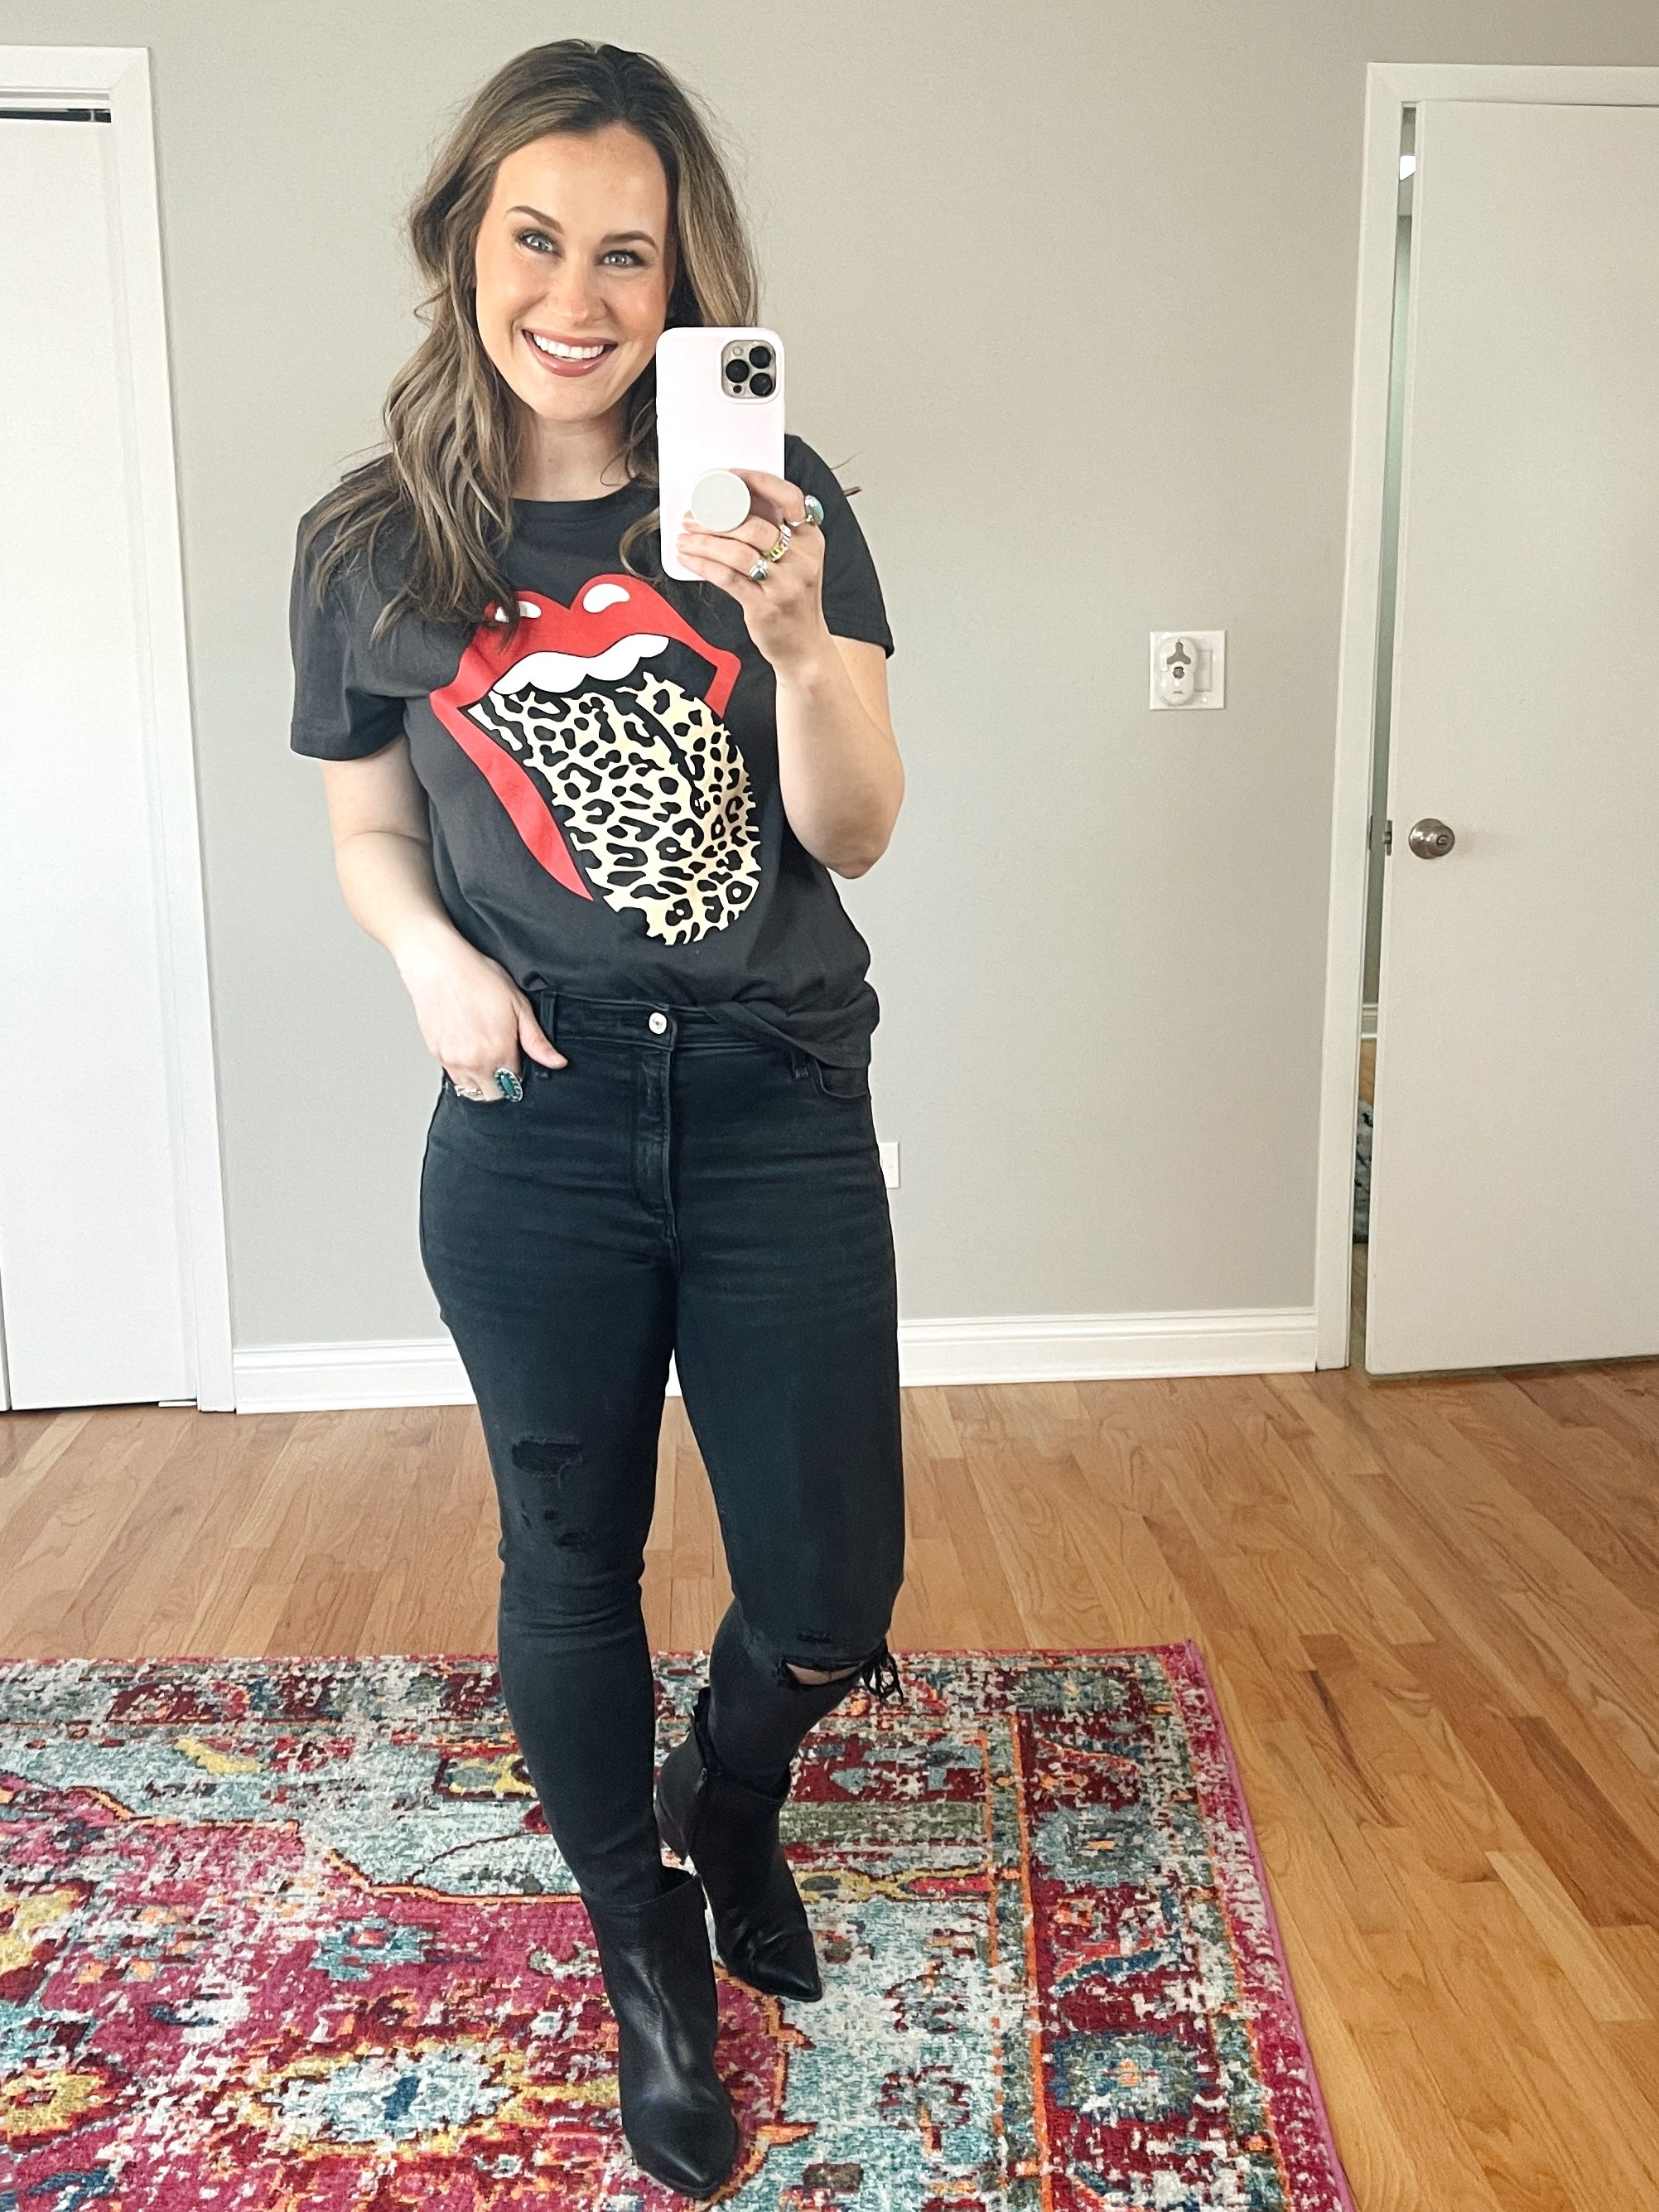 casual wear for ladies 2020 classy casual outfits for ladies casual outfits ideas for ladies casual outfits for teenage girl casual outfits summer casual outfits 2020 casual wear for ladies 2019 casual outfits with jeans